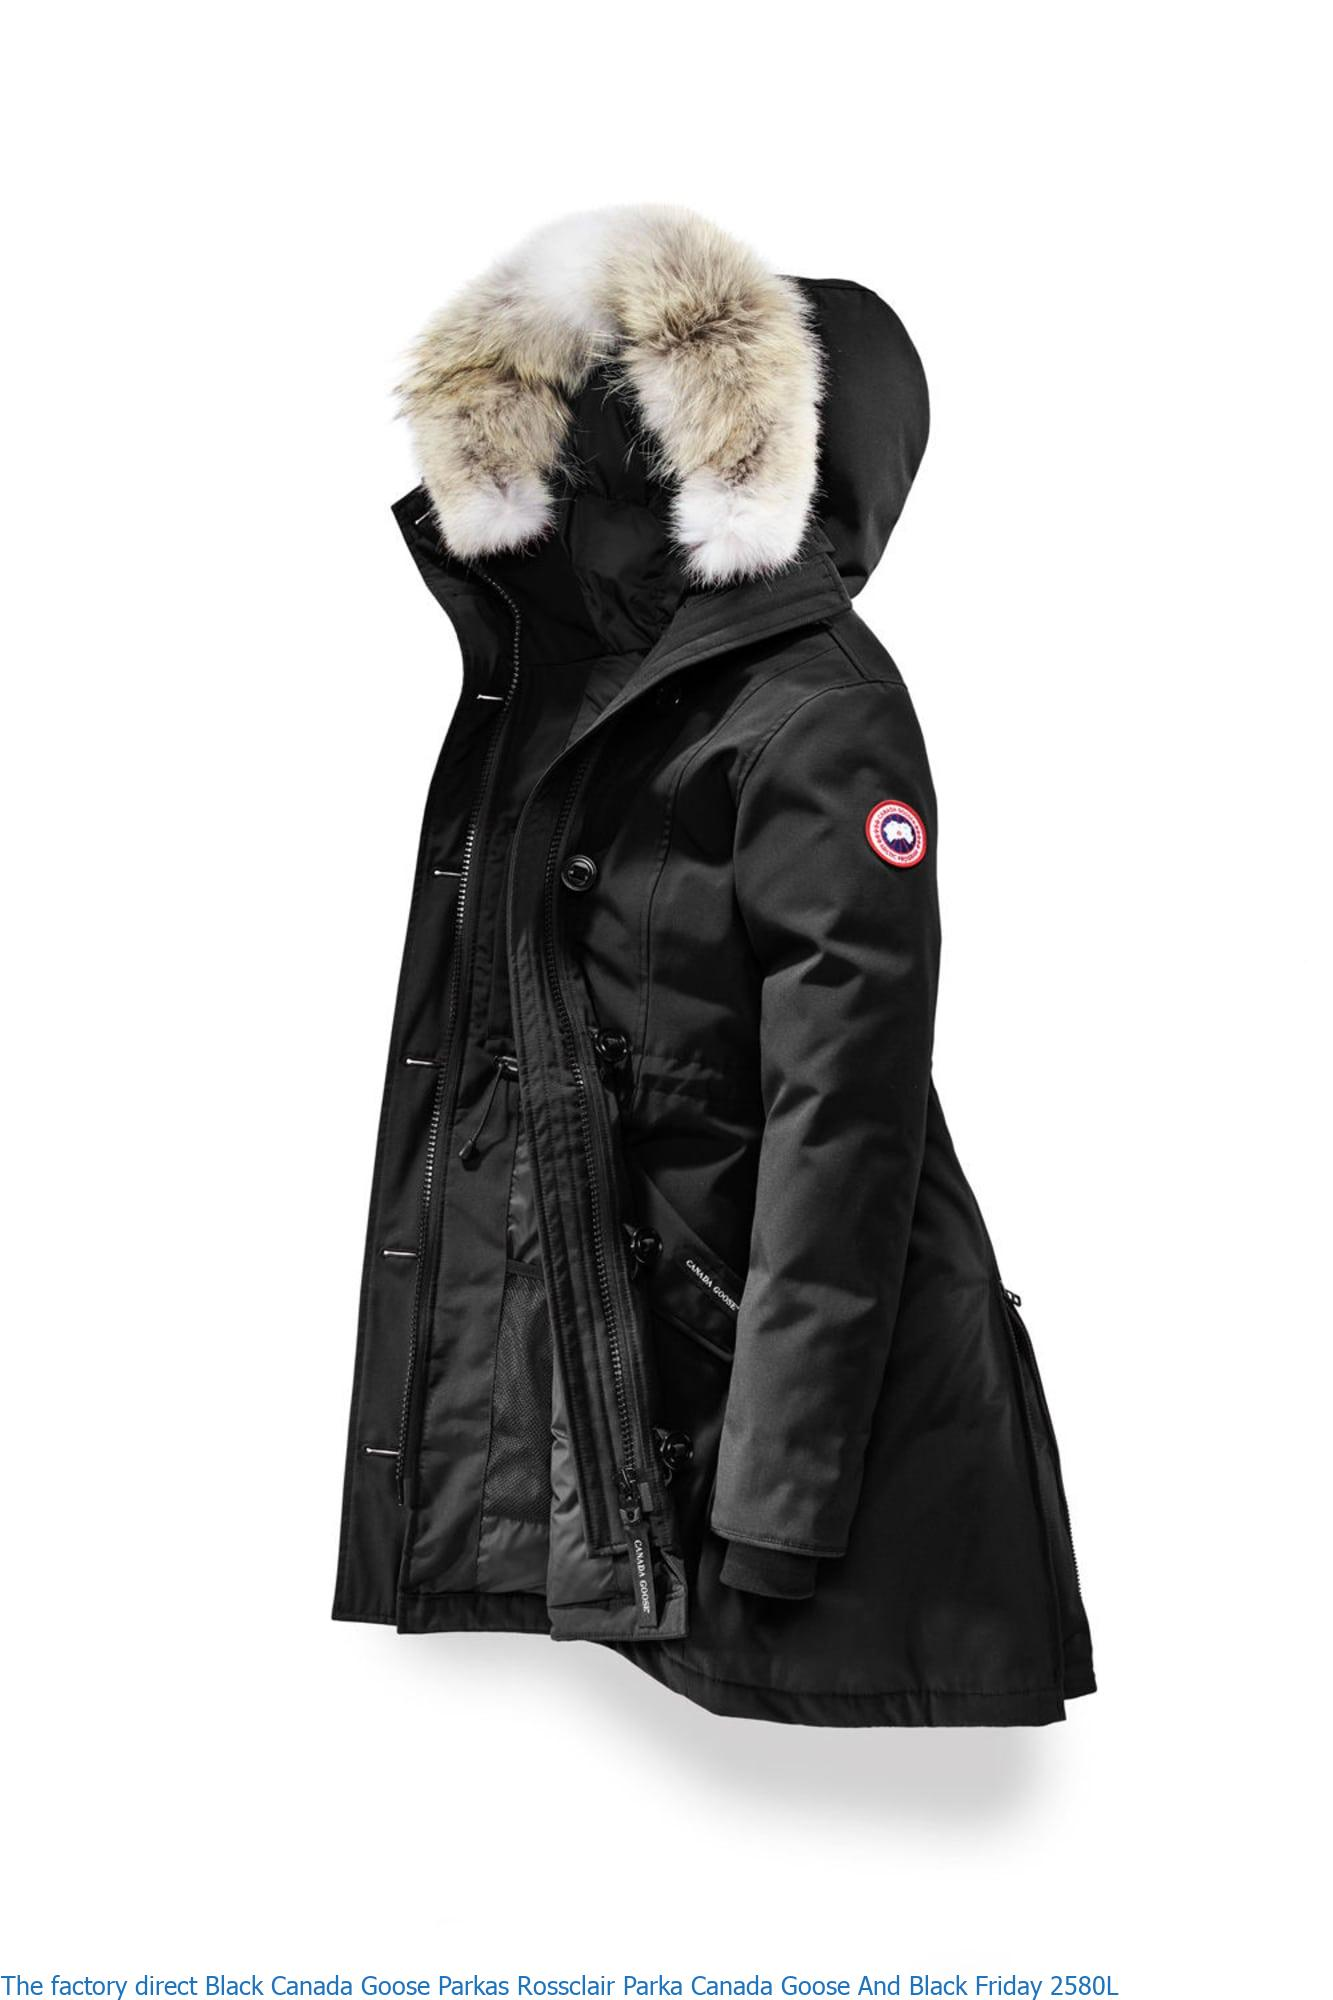 The Factory Direct Black Canada Goose Parkas Rossclair Parka Canada Goose And Black Friday 2580l Canada Goose Sale Outlet Cheap Parka Online Shop Free Shipping